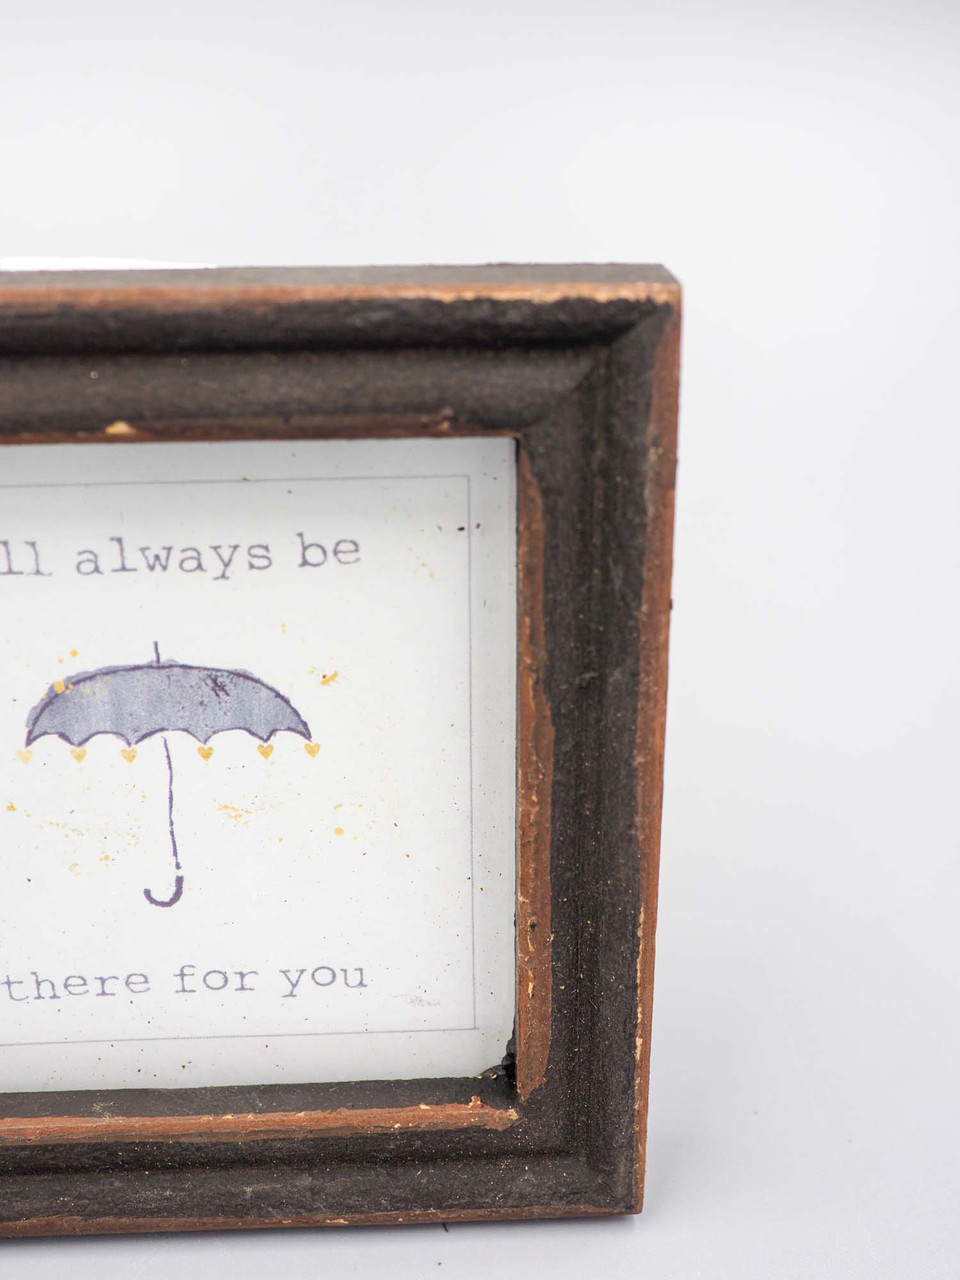 framed sentiment i'll always be there for you